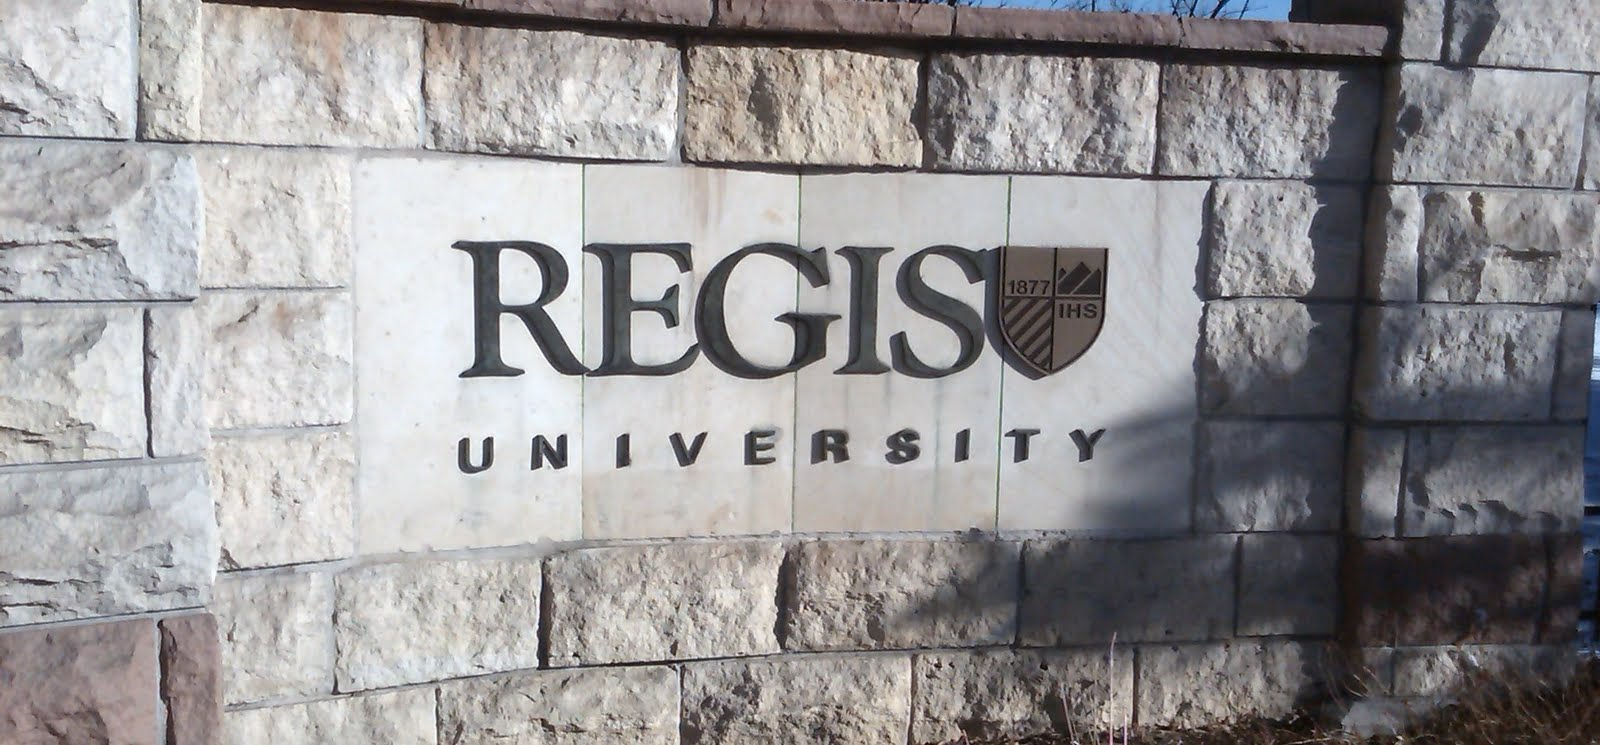 Regis University Review